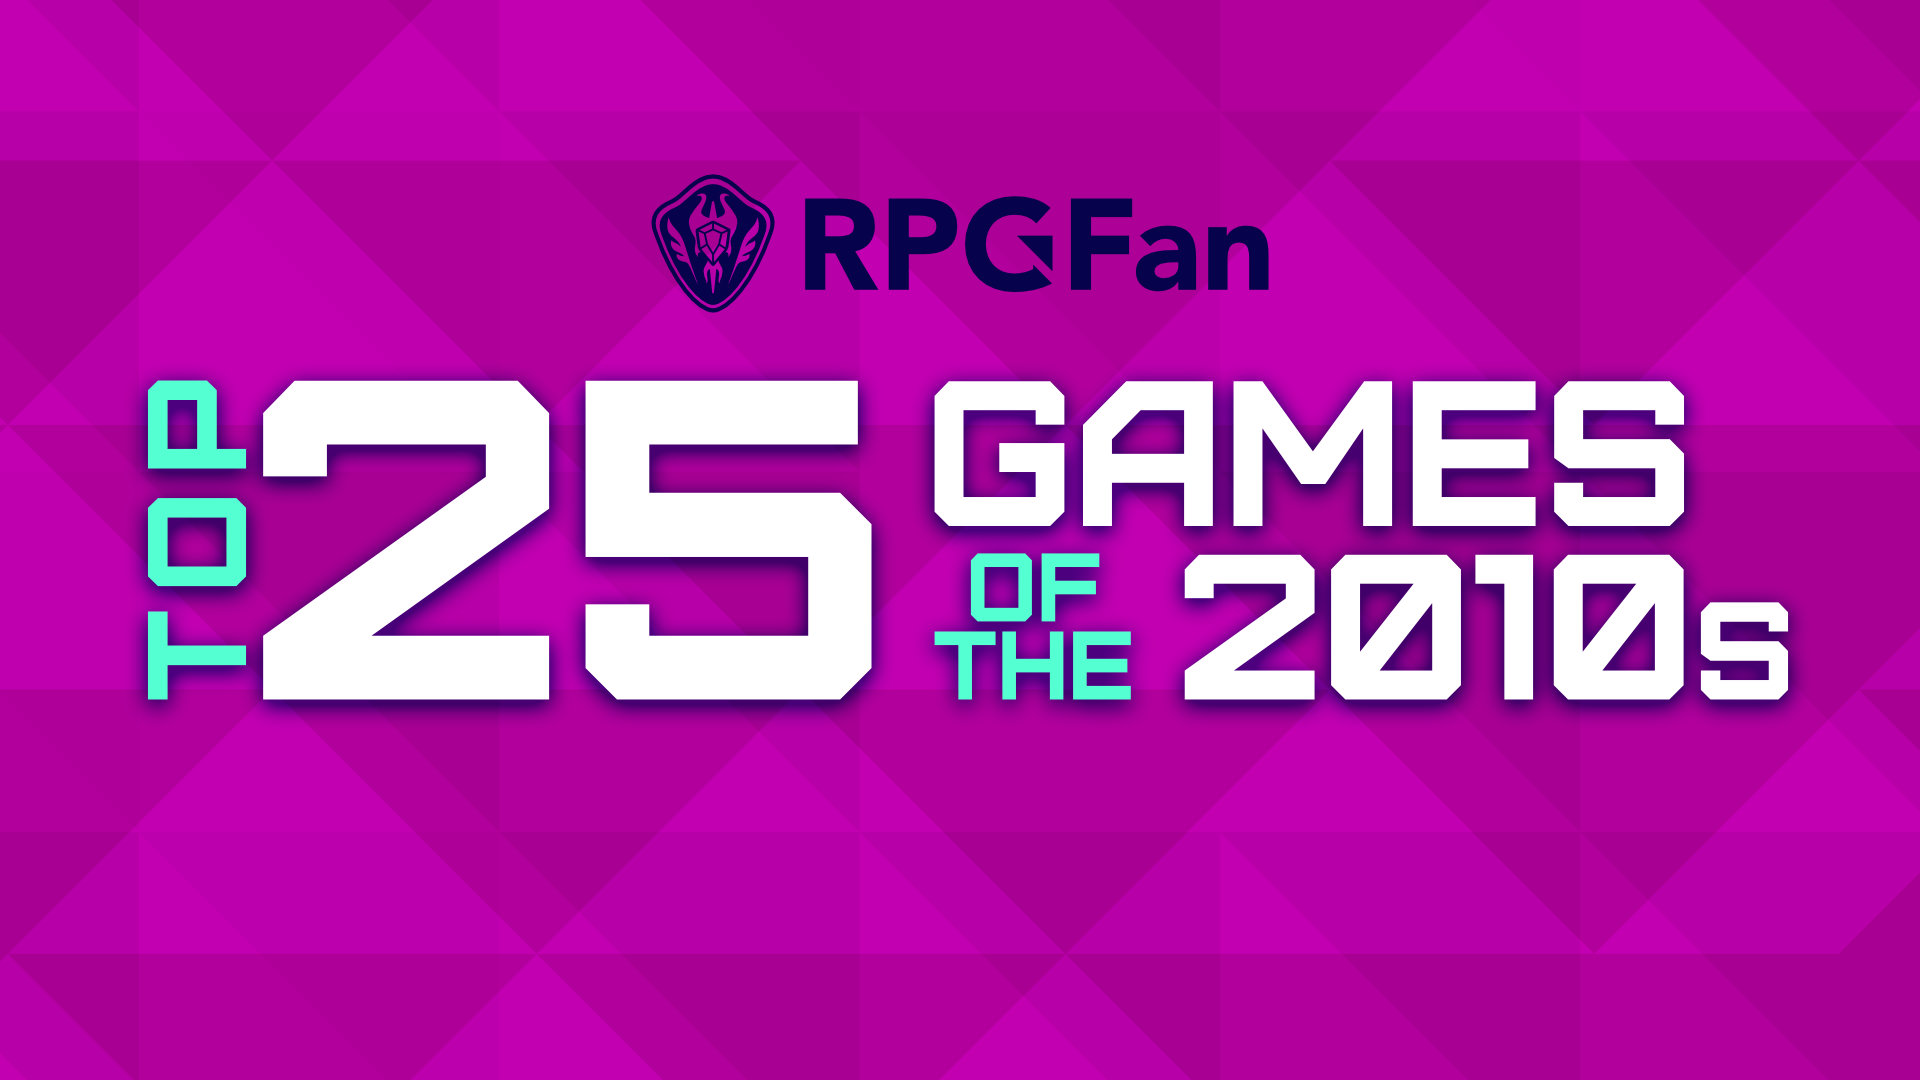 Top 25 Games of the 2010s